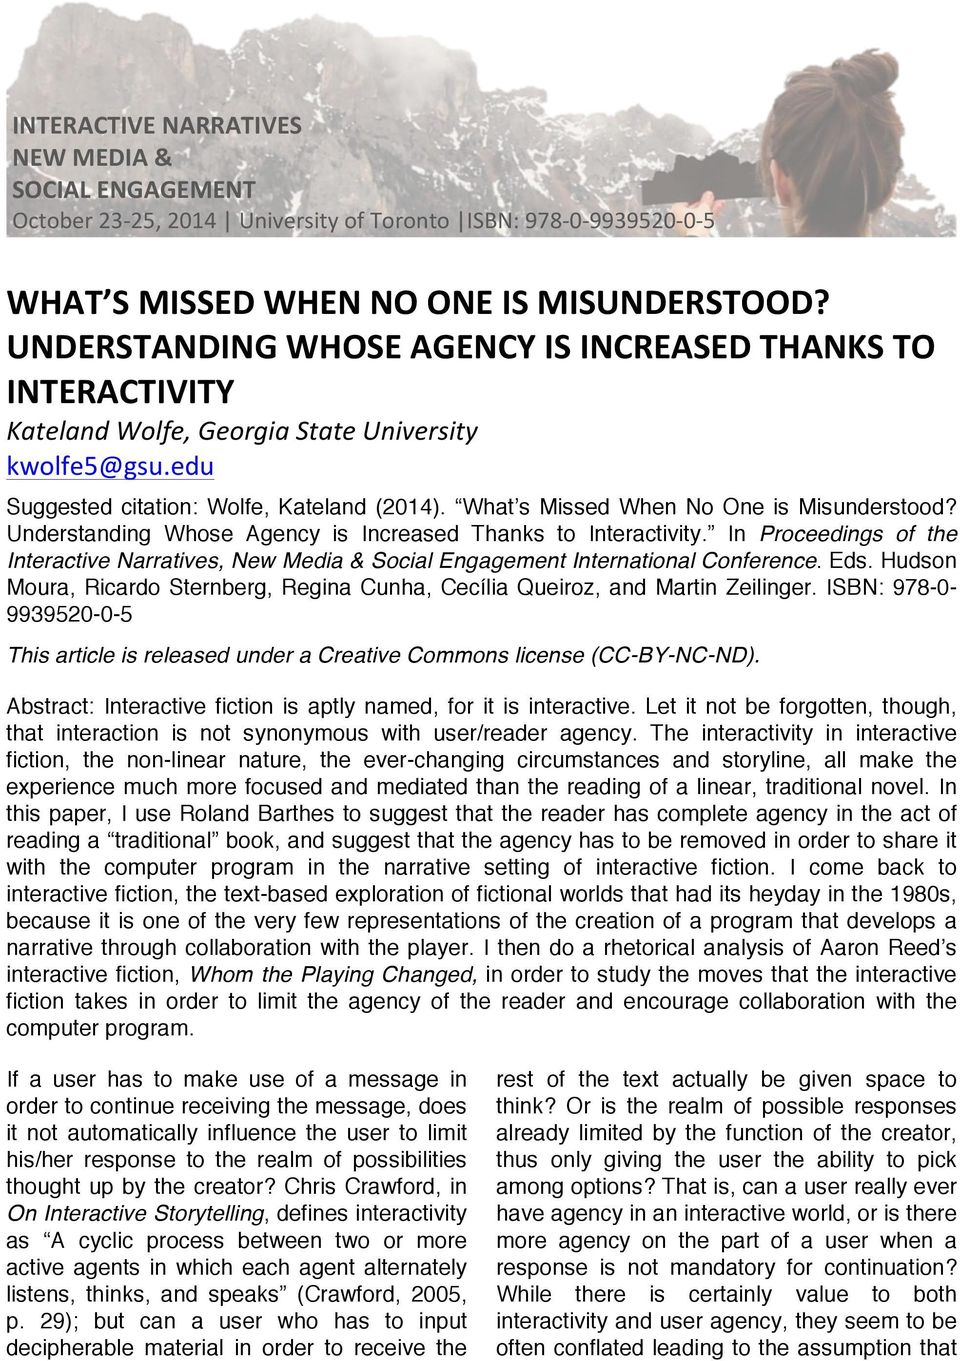 What s Missed When No One is Misunderstood? Understanding Whose Agency is Increased Thanks to Interactivity.